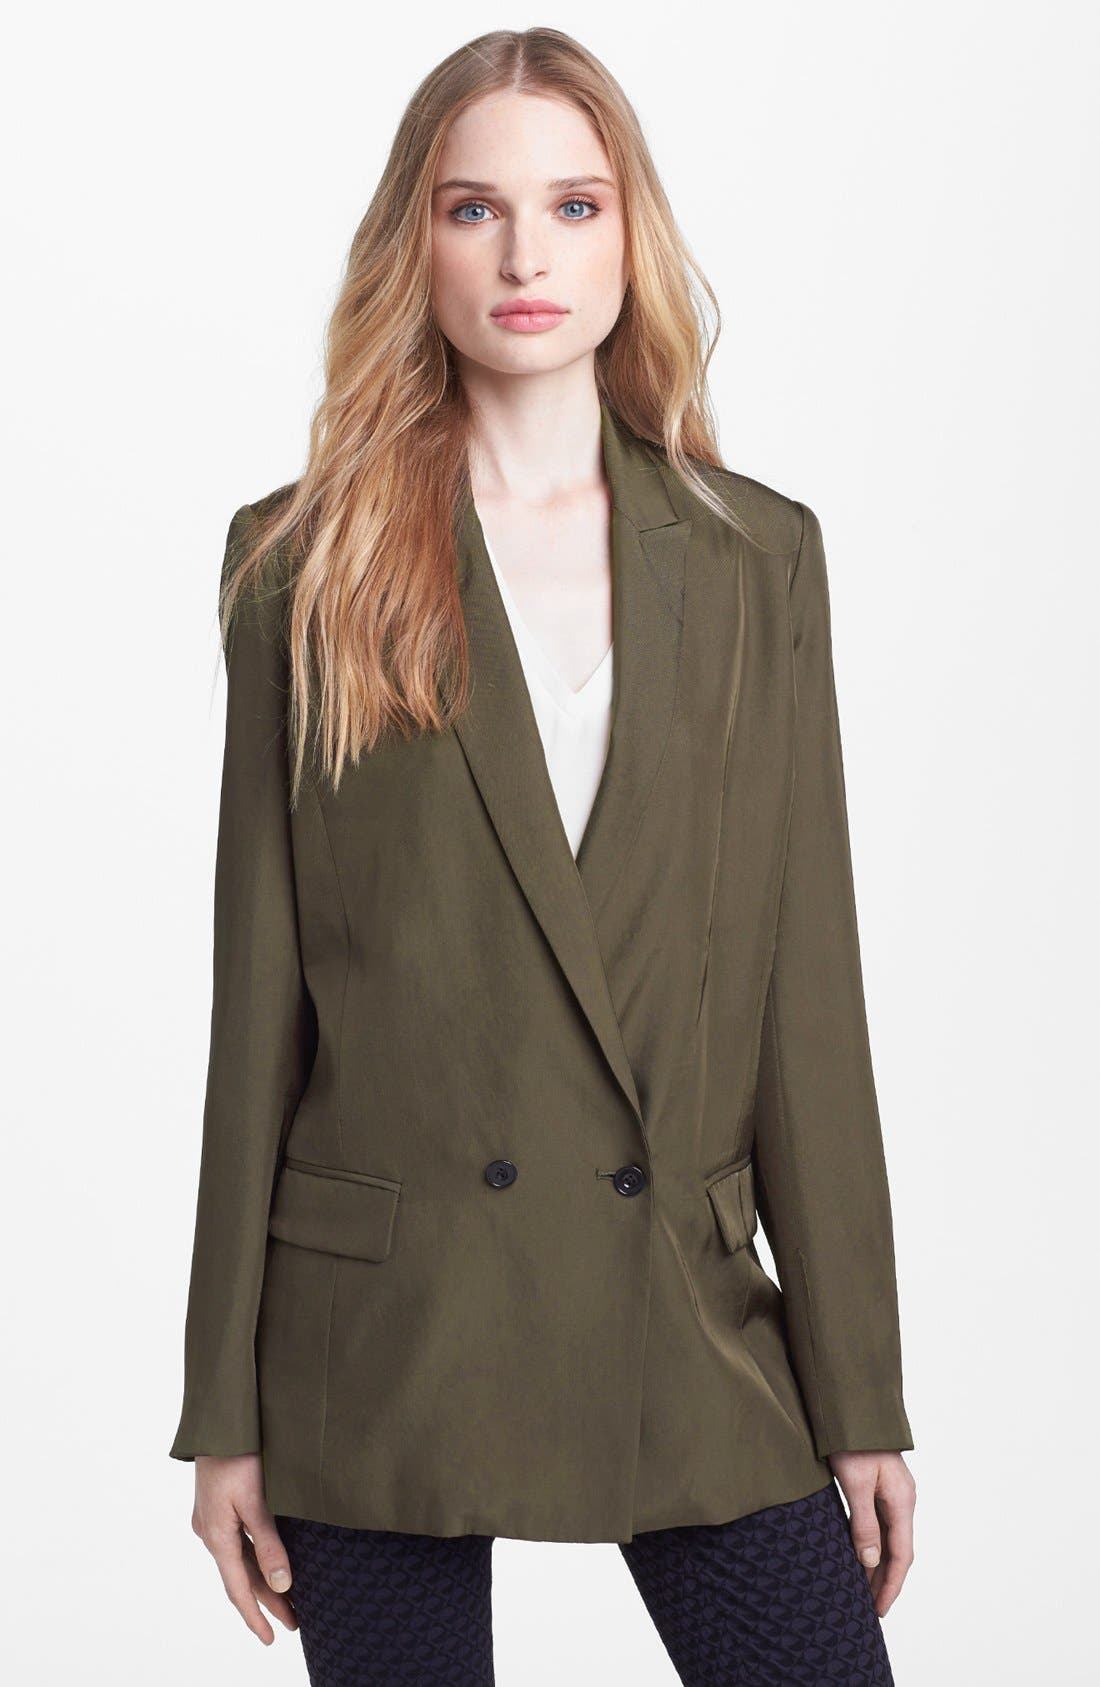 Alternate Image 1 Selected - MARC BY MARC JACOBS 'Caterina' Twill Jacket